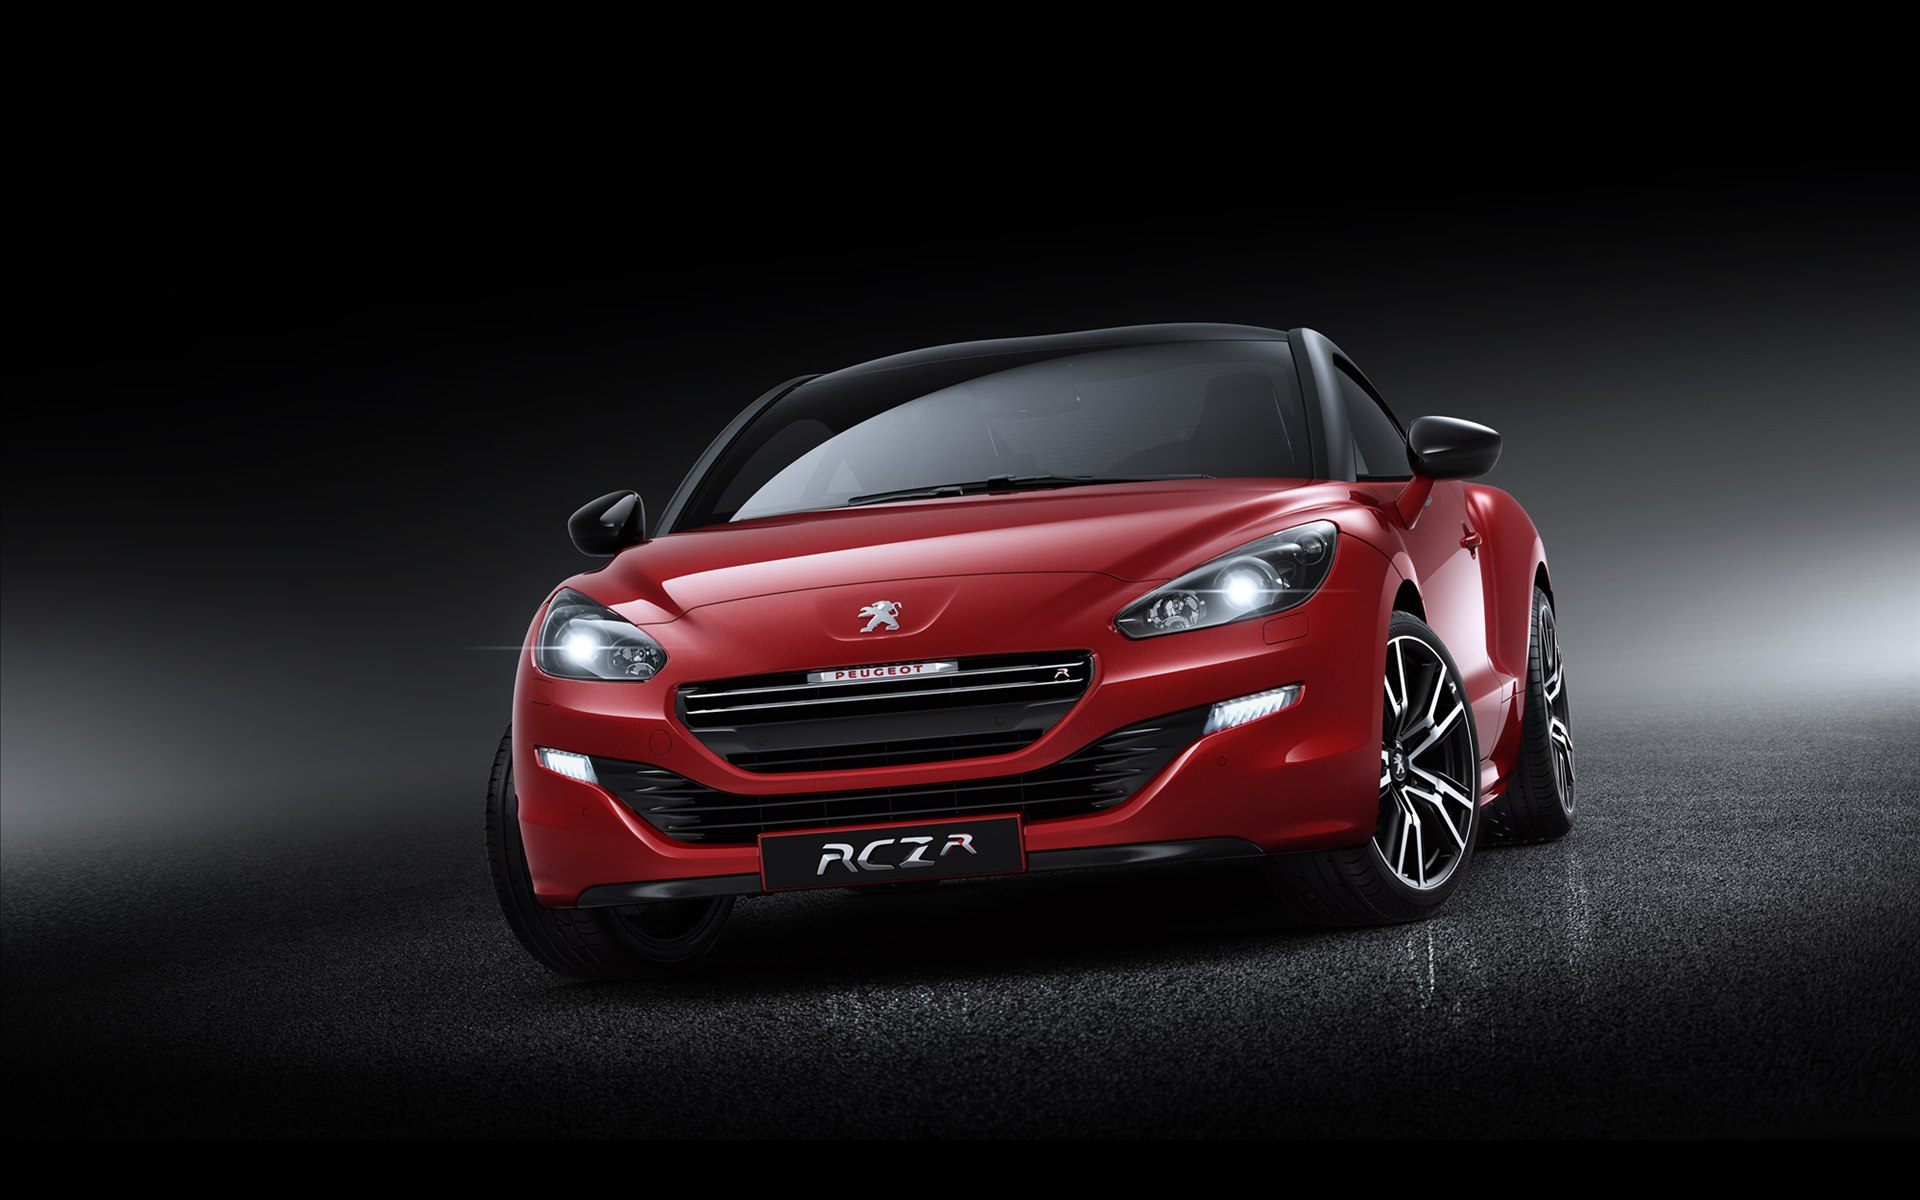 red peugeot rcz front view wallpaper 48711